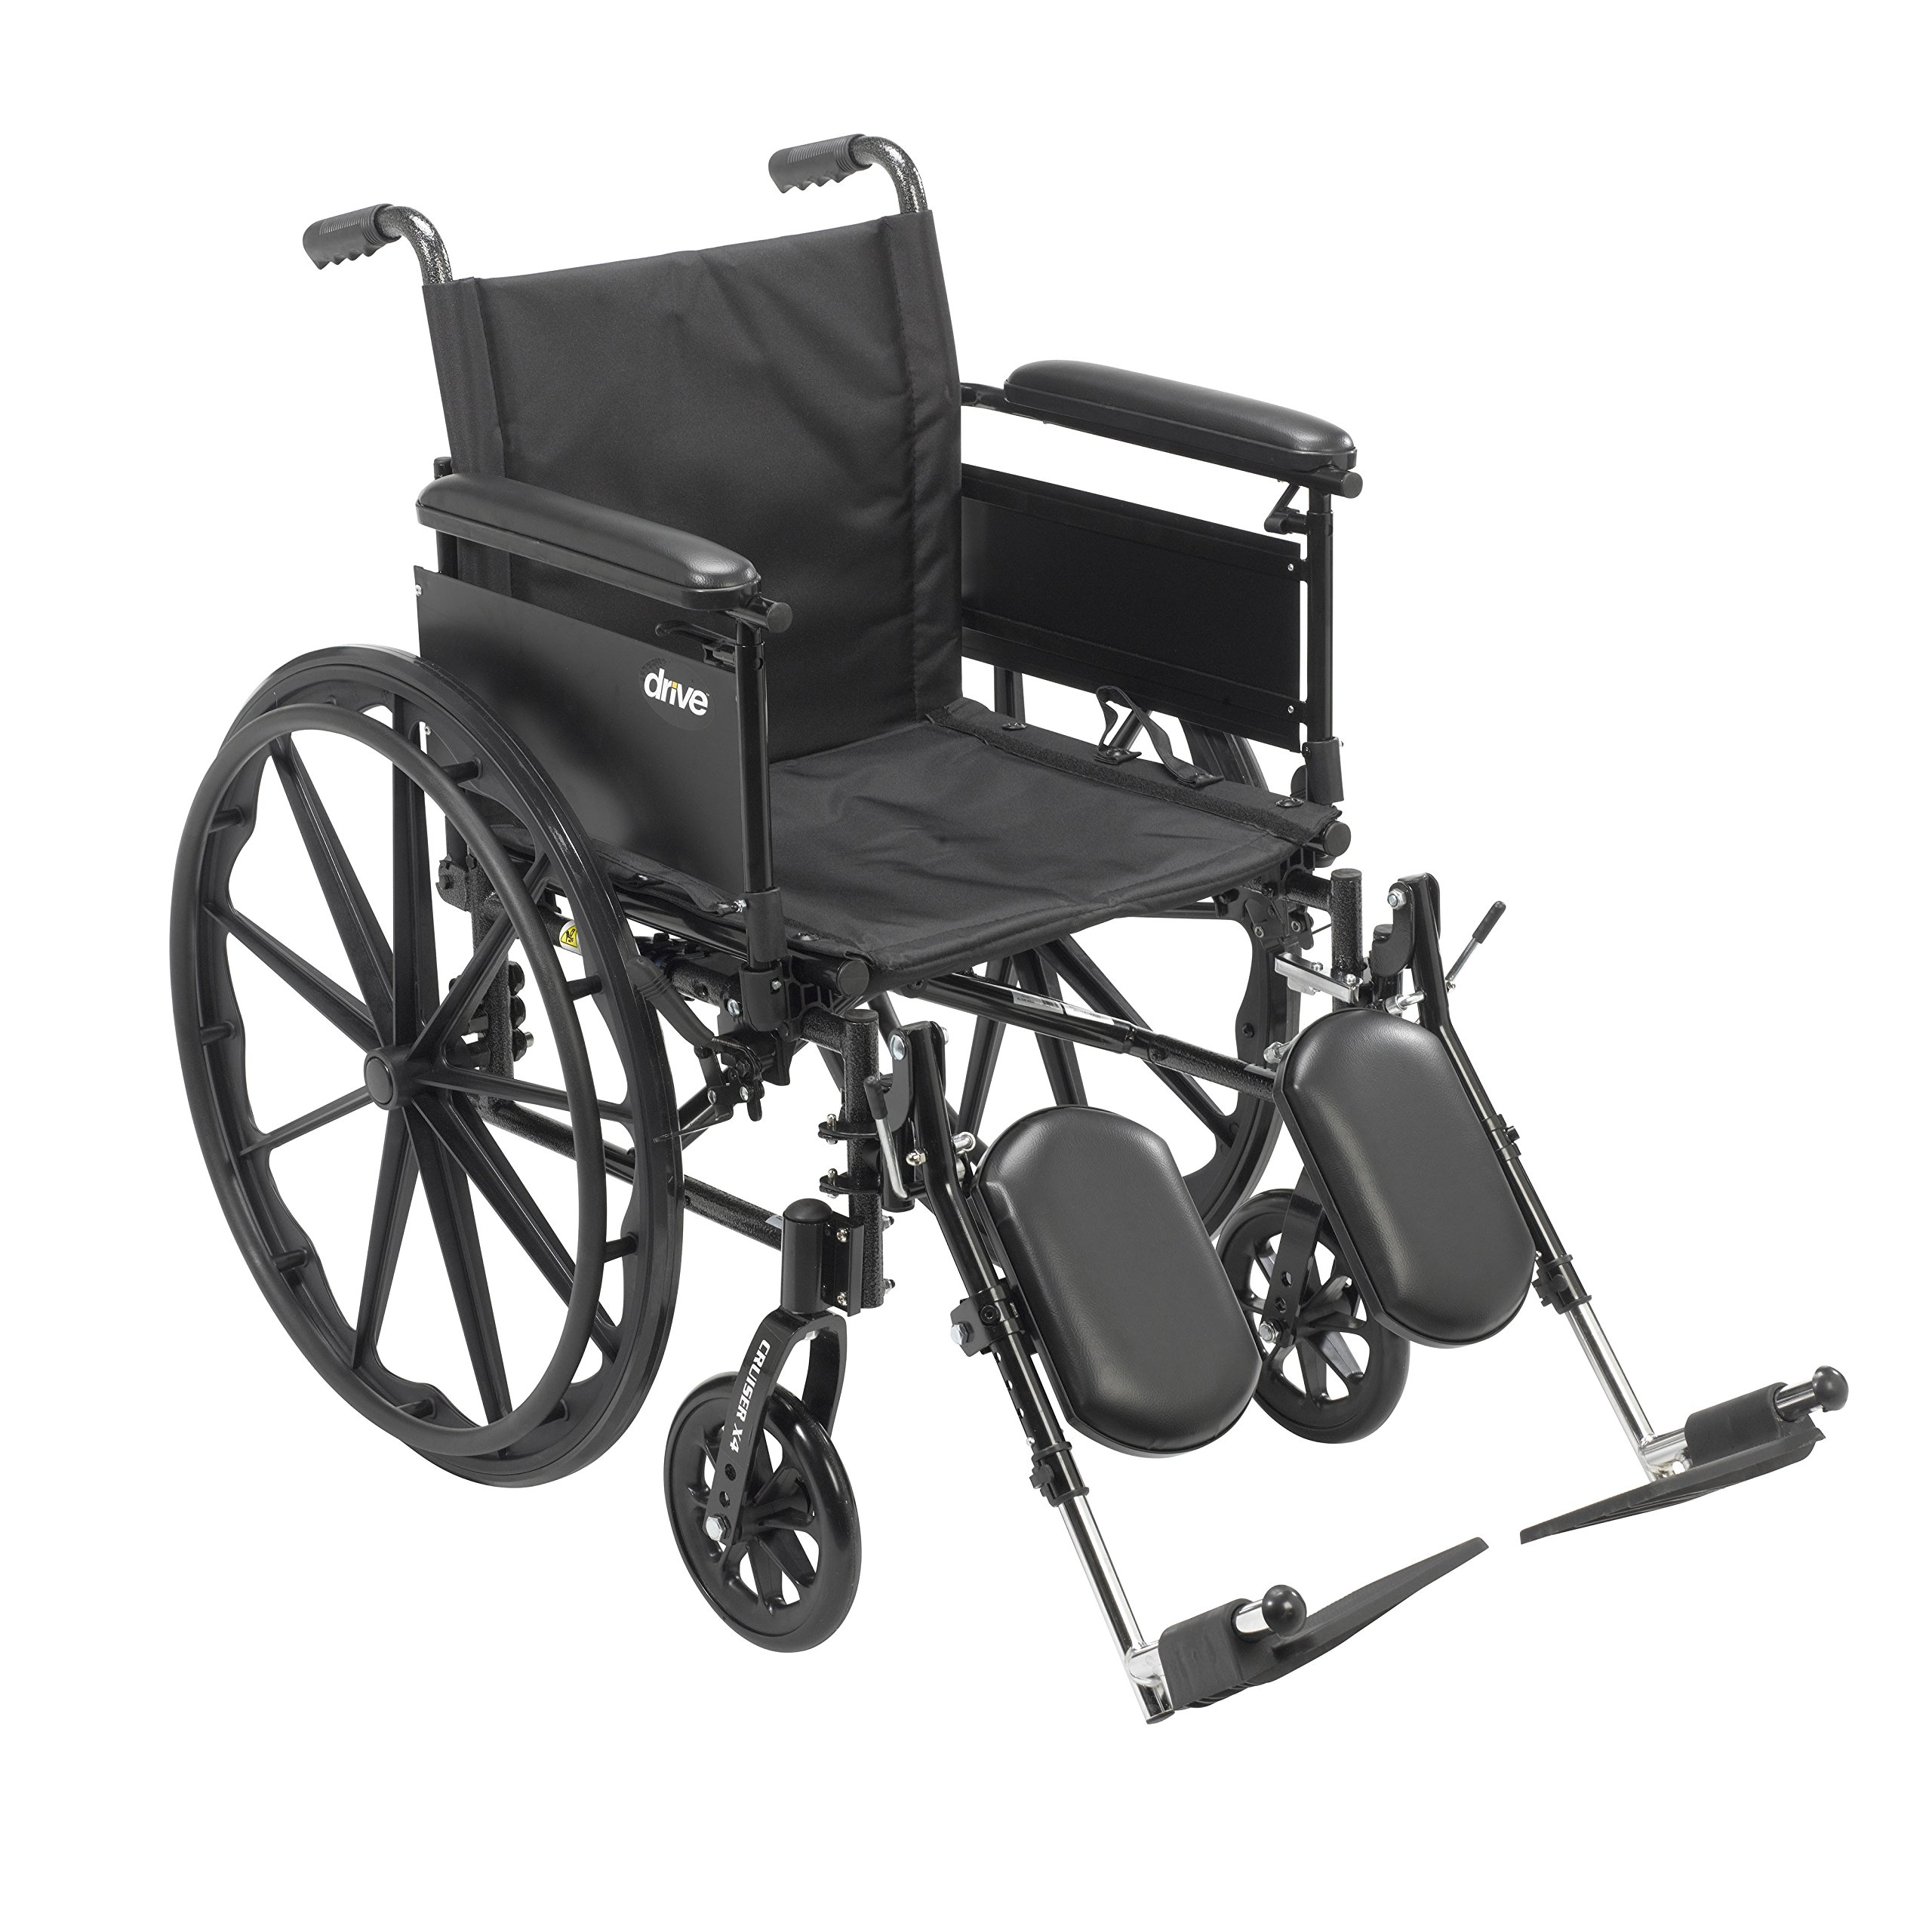 Drive Medical Cruiser X4 Lightweight Dual Axle Wheelchair with Adjustable Detachable Arms, Full Arms, Elevating Leg Rests, 20'' Seat